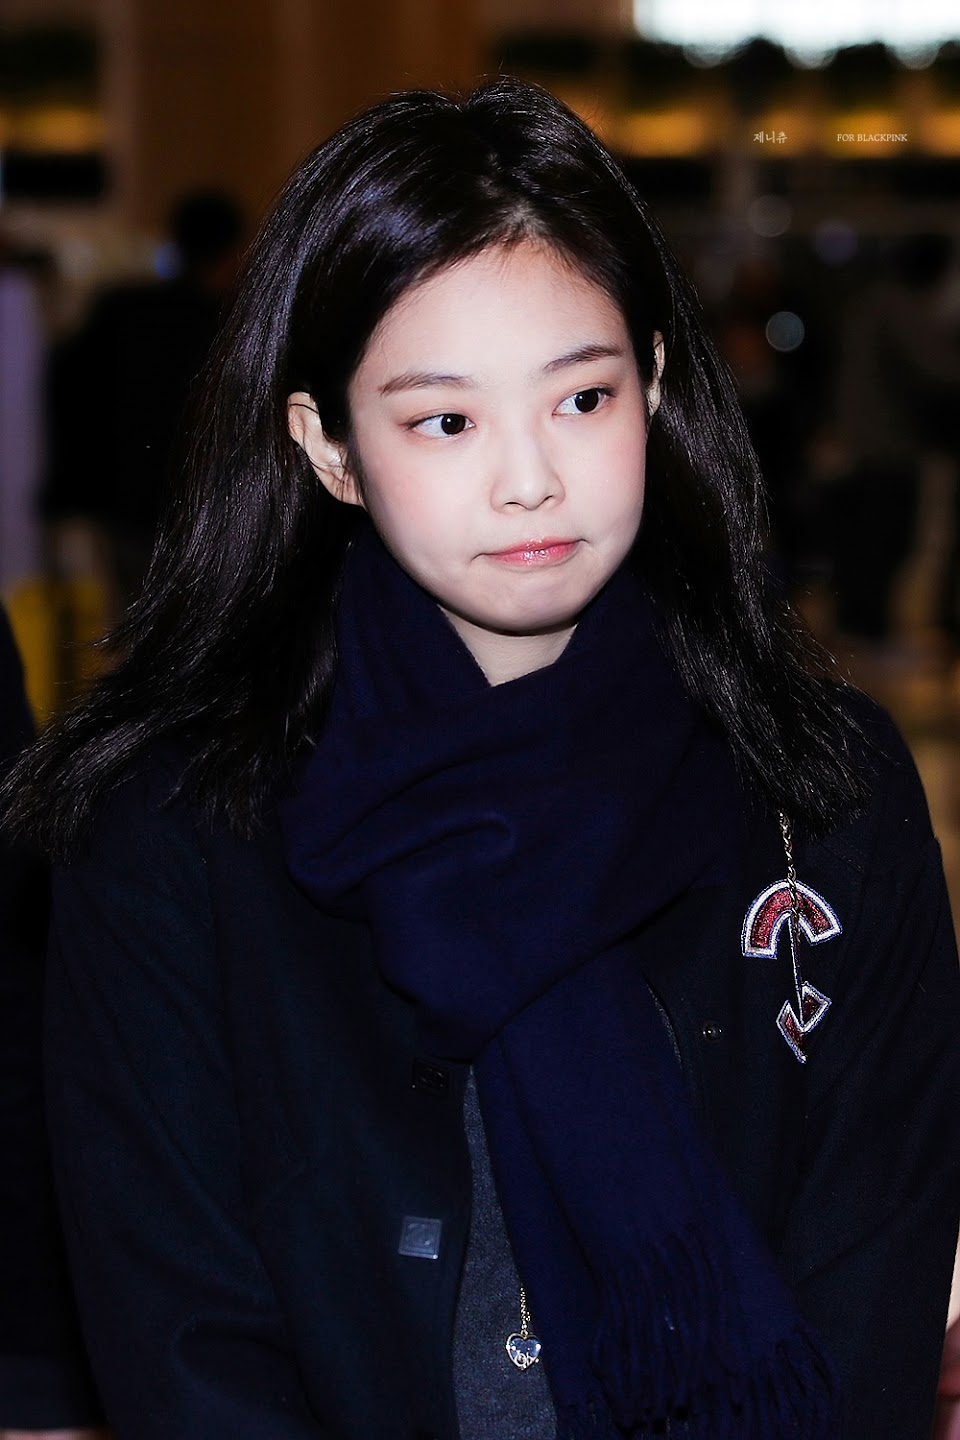 blackpink jennie airport fashion 2019 1